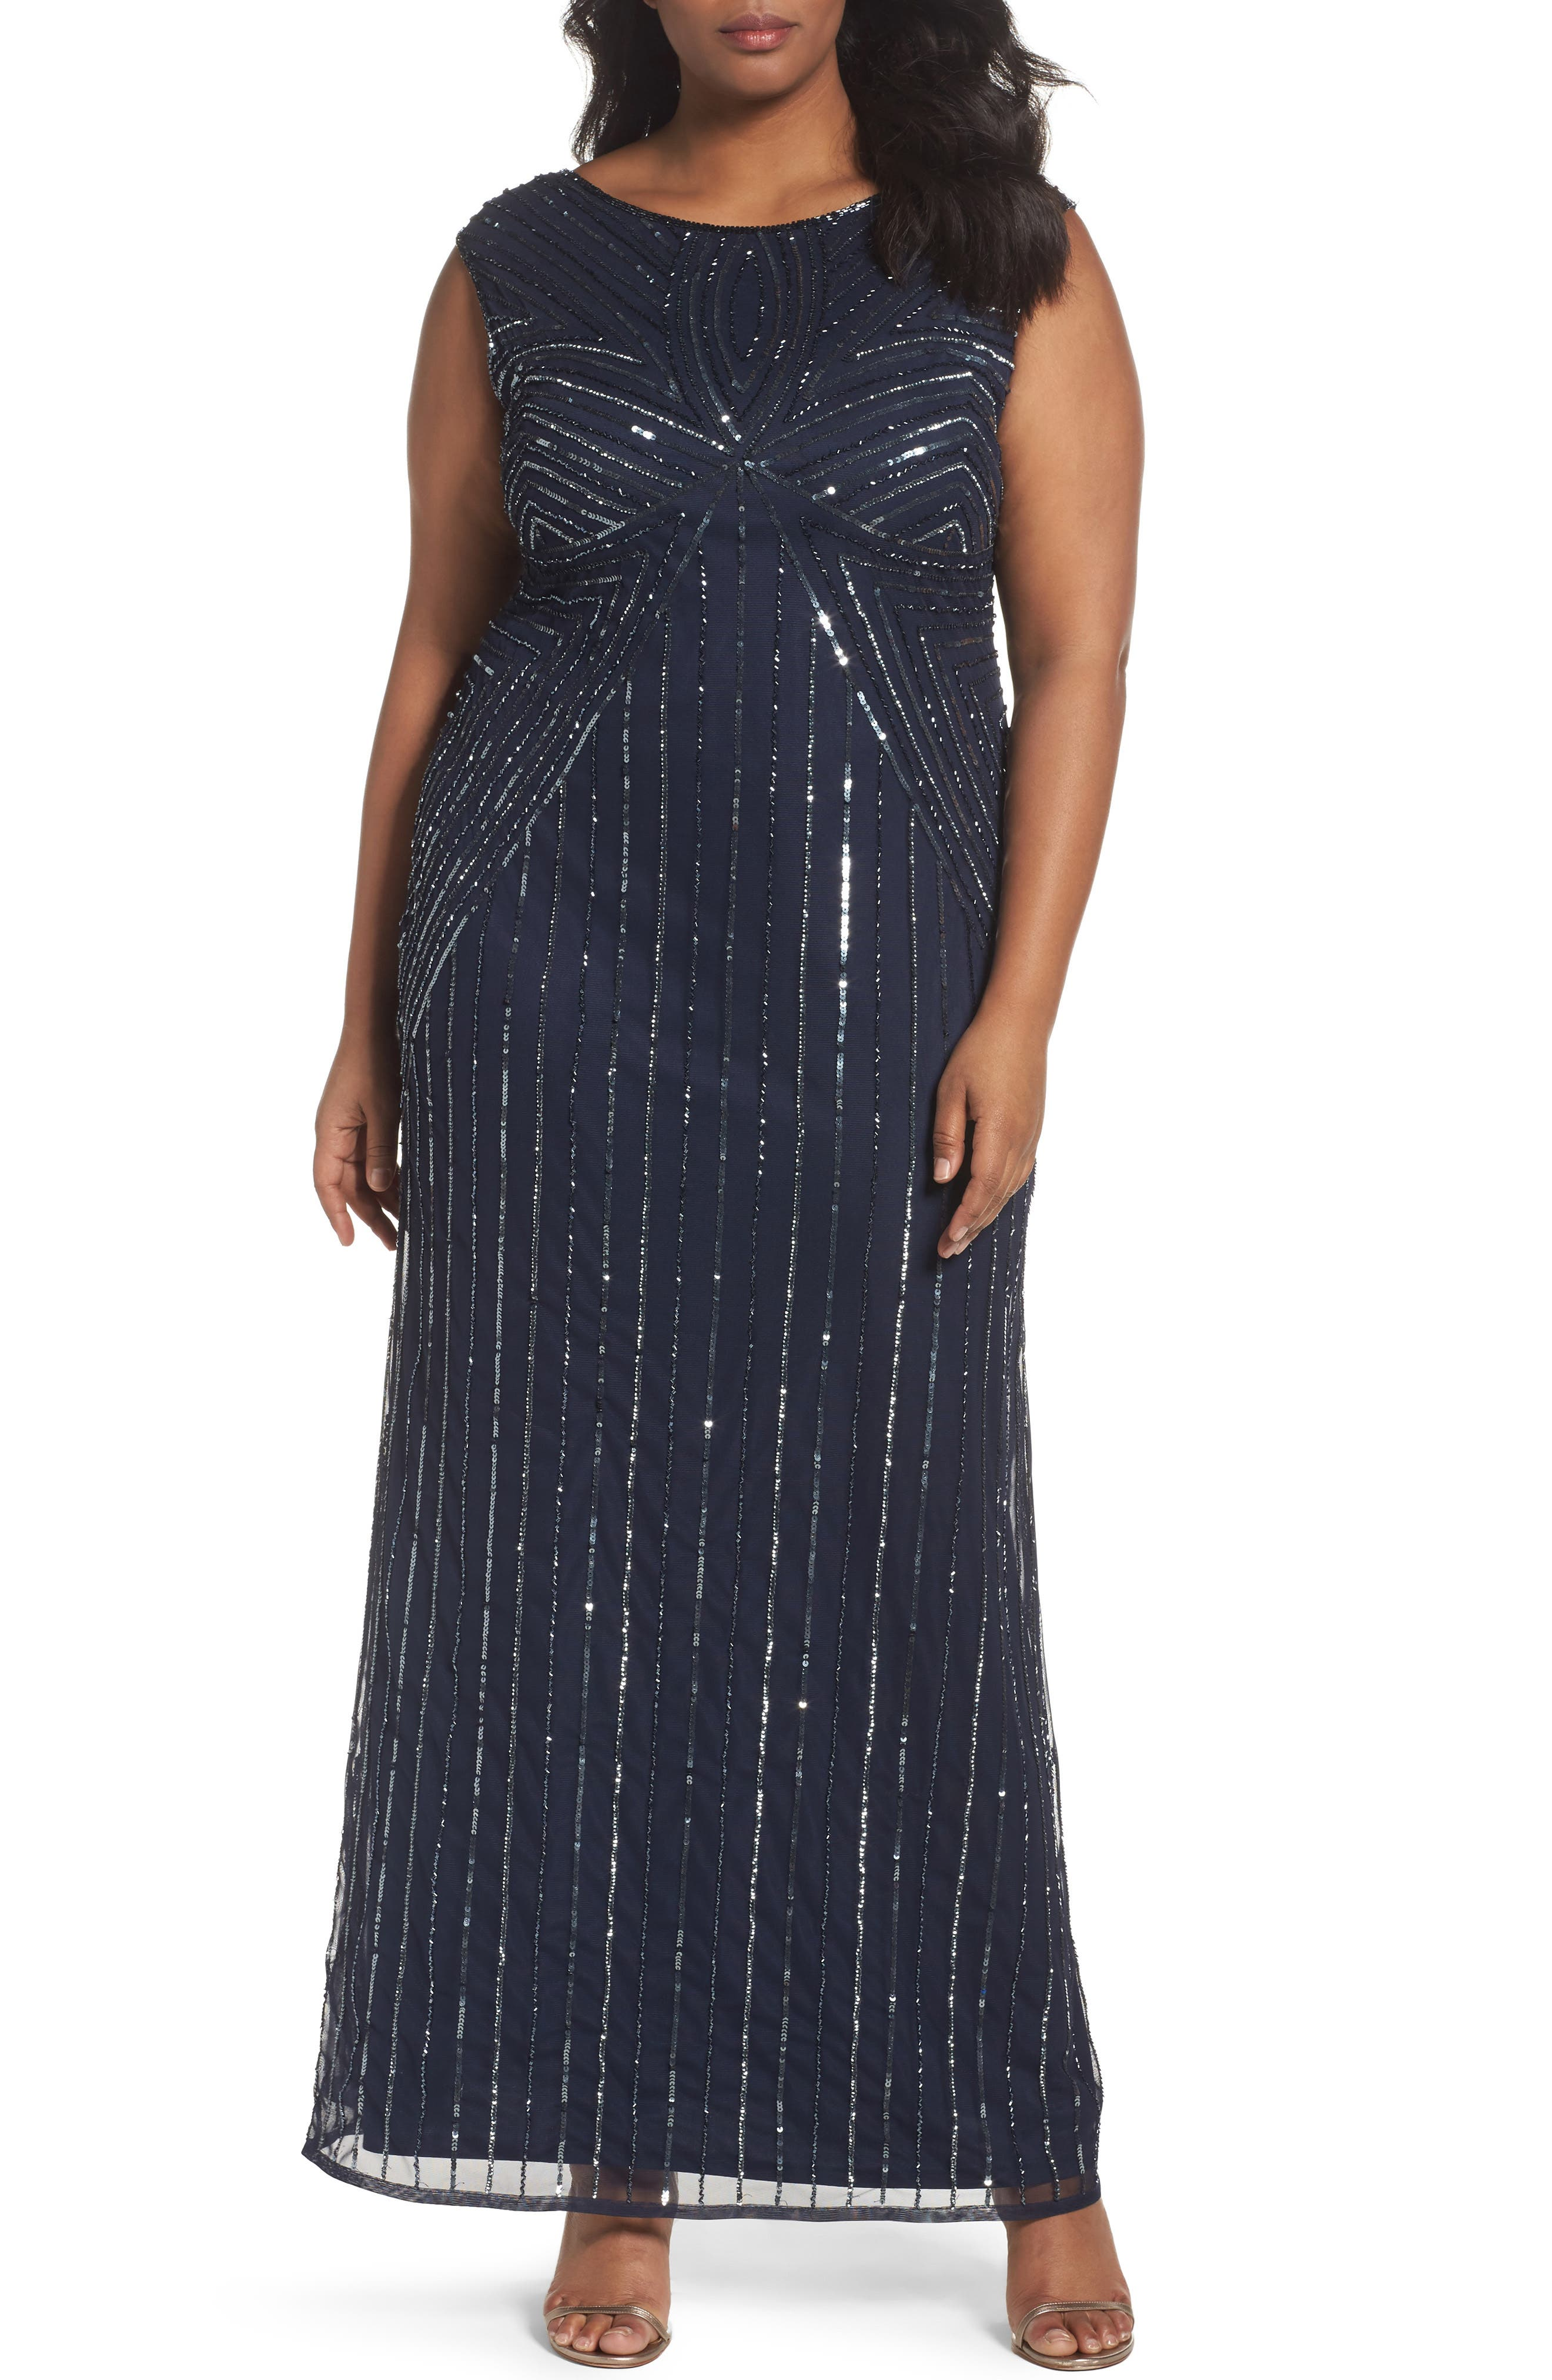 Adrianna Papell Embellished Cap Sleeve Gown (Plus Size)